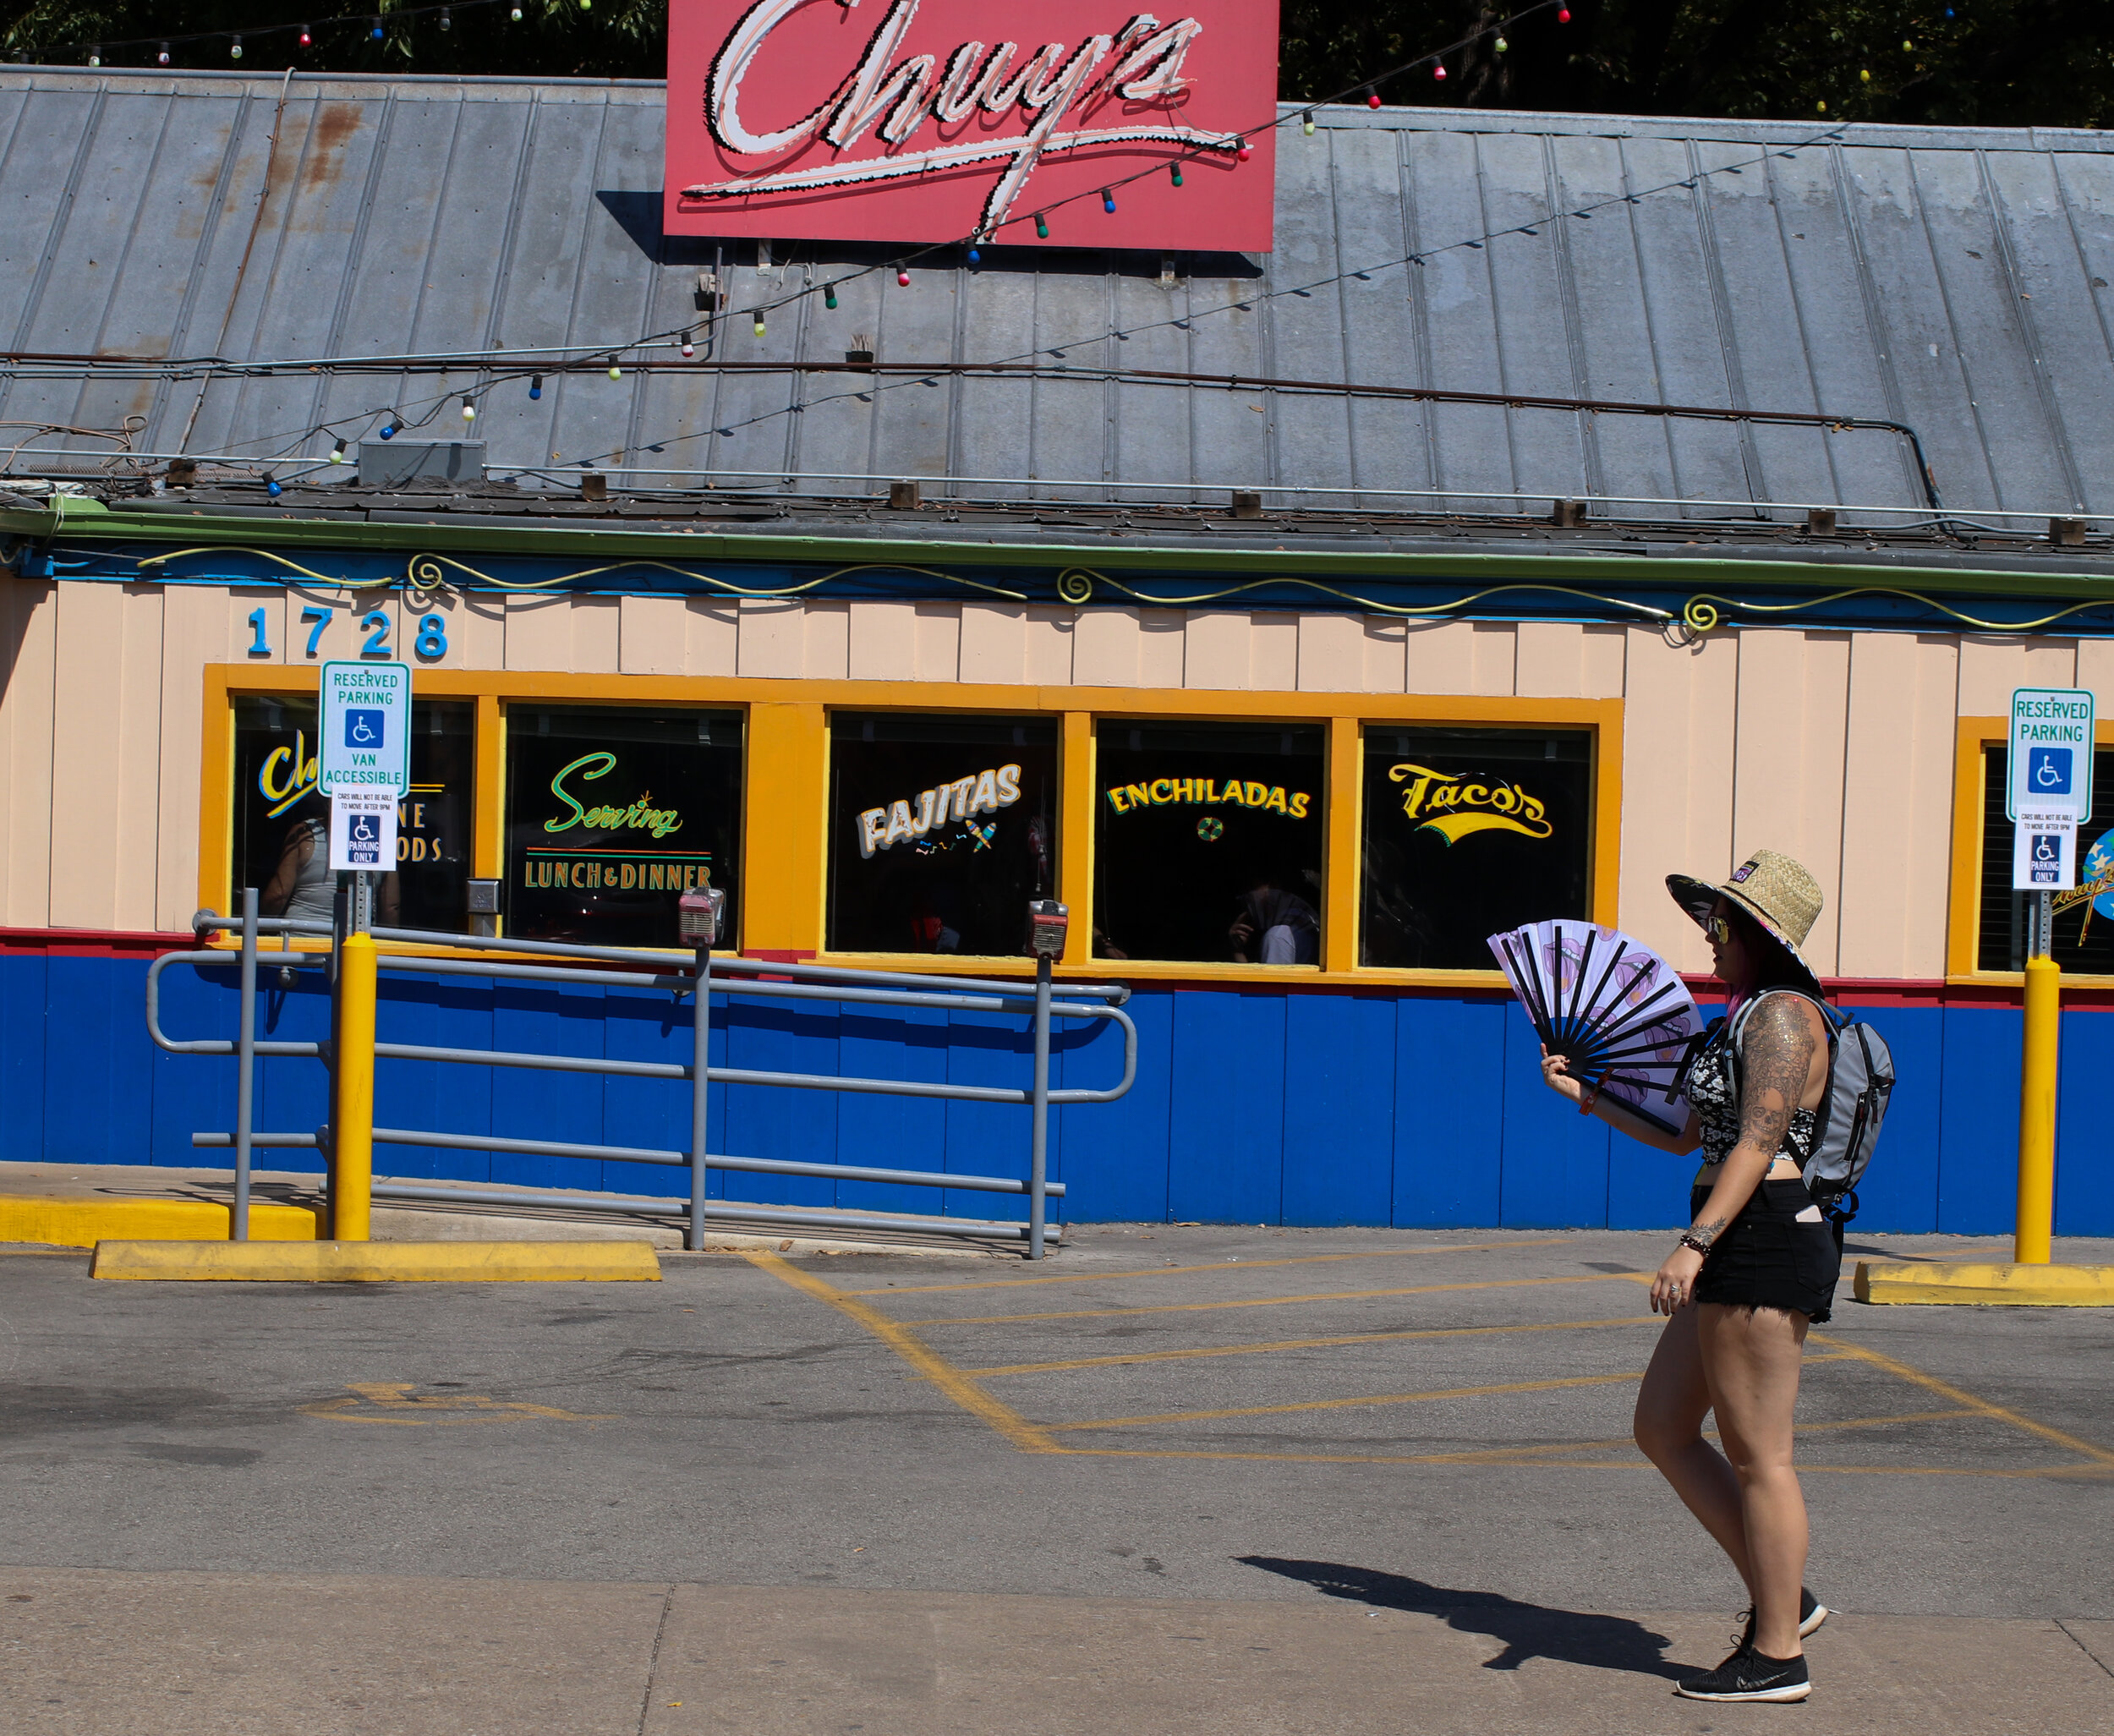 An ACL reveler passes Chuys with an ornamental fan